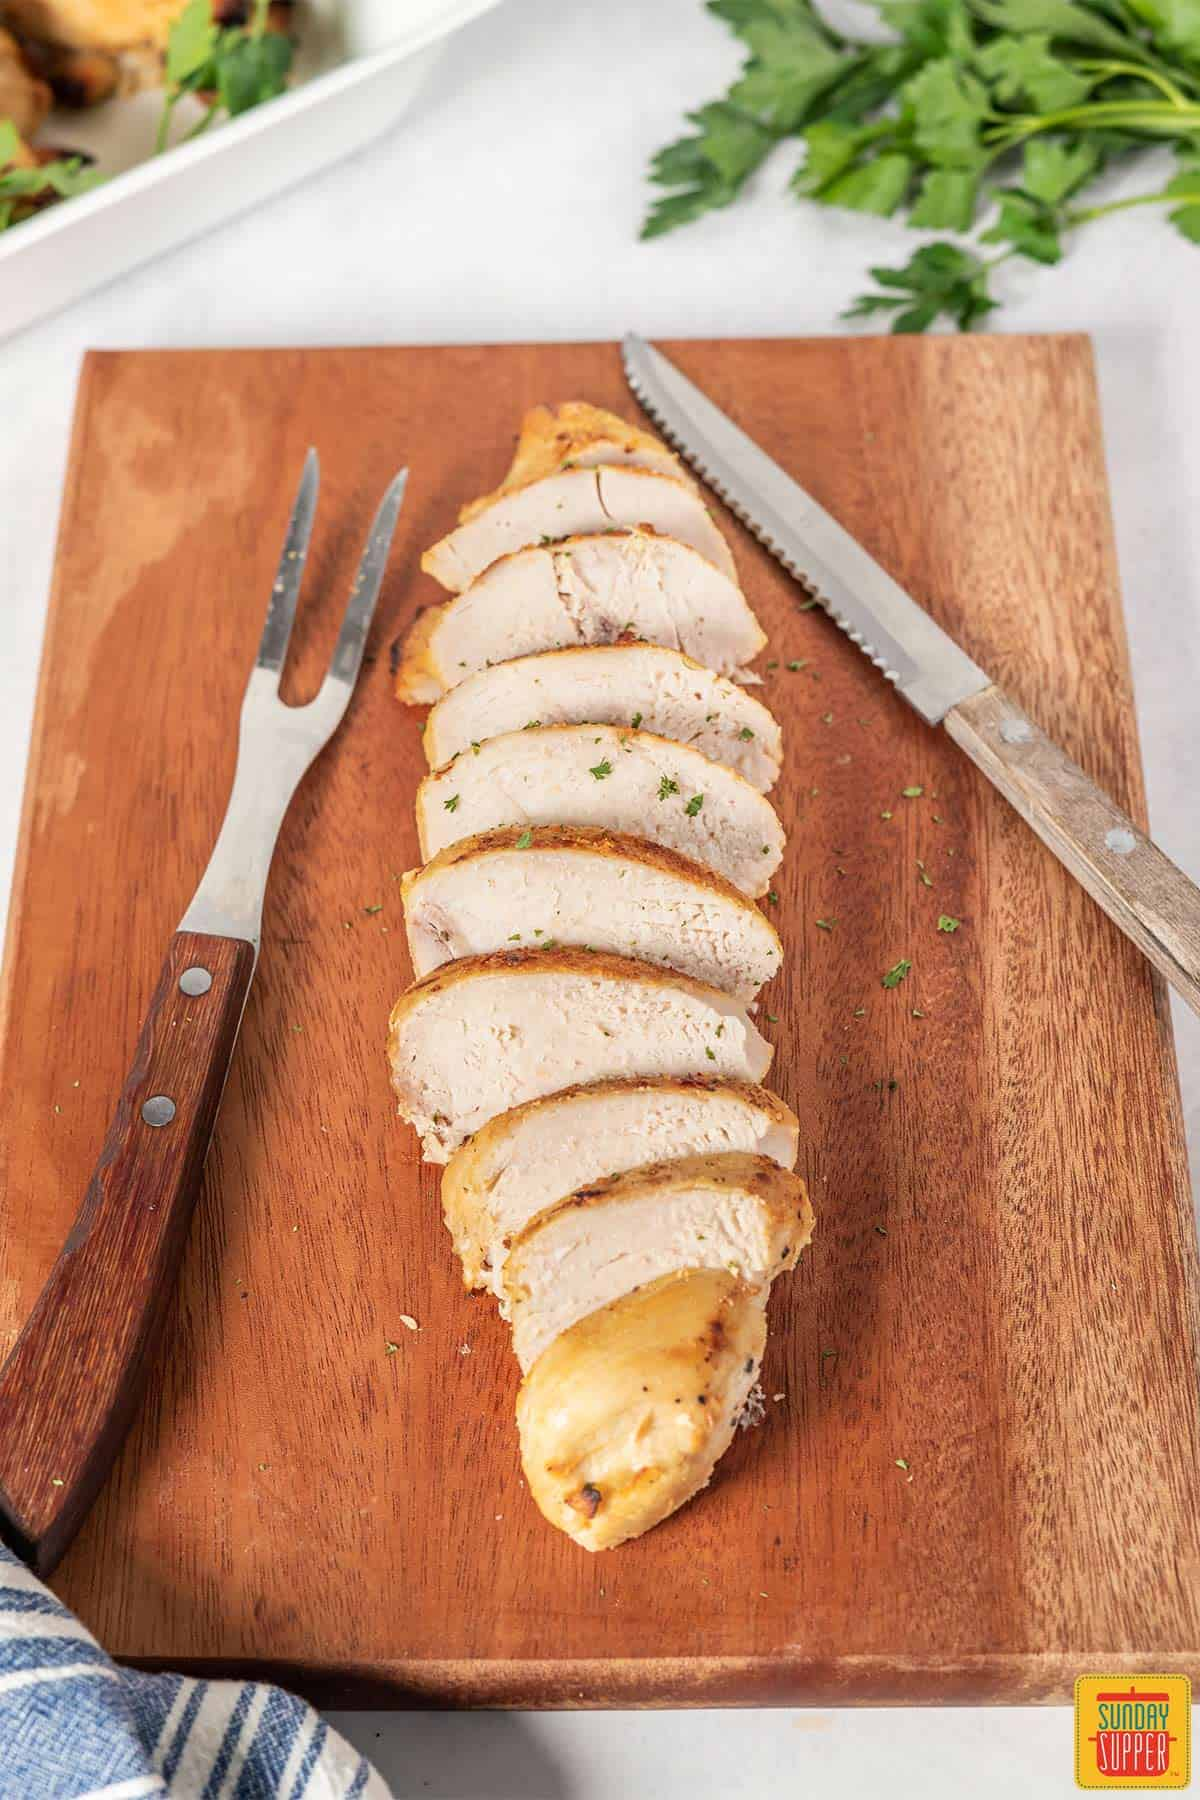 Buttermilk roast chicken on a cutting board with a serving fork and knife